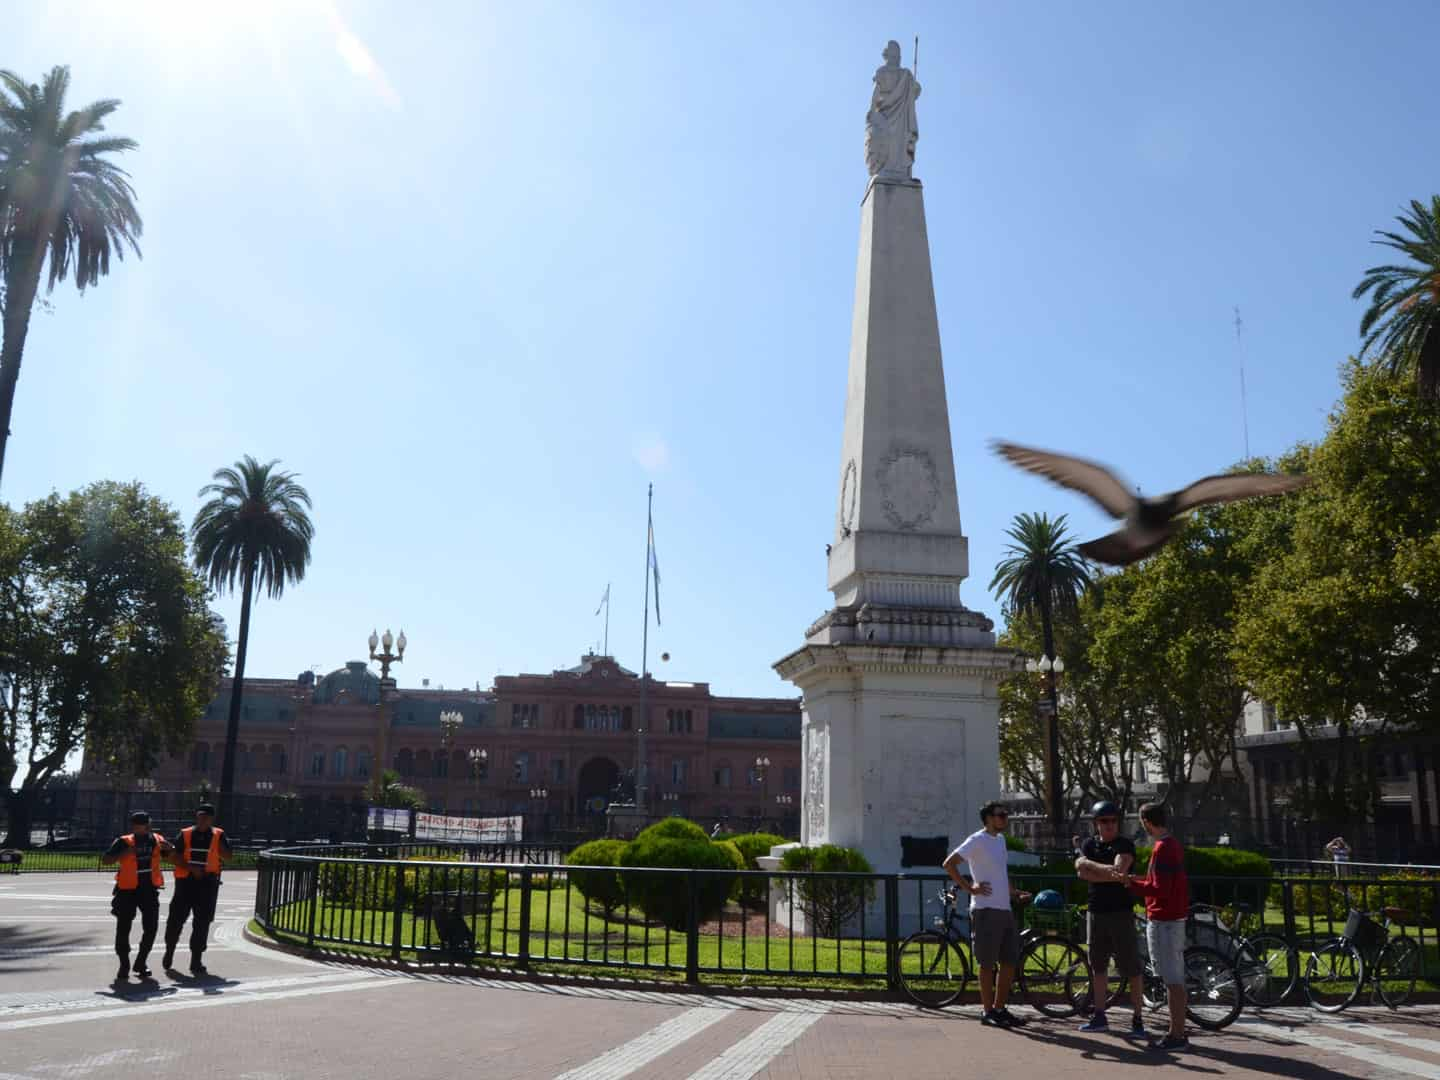 Plaza de Mayo in Buenos Aires city center